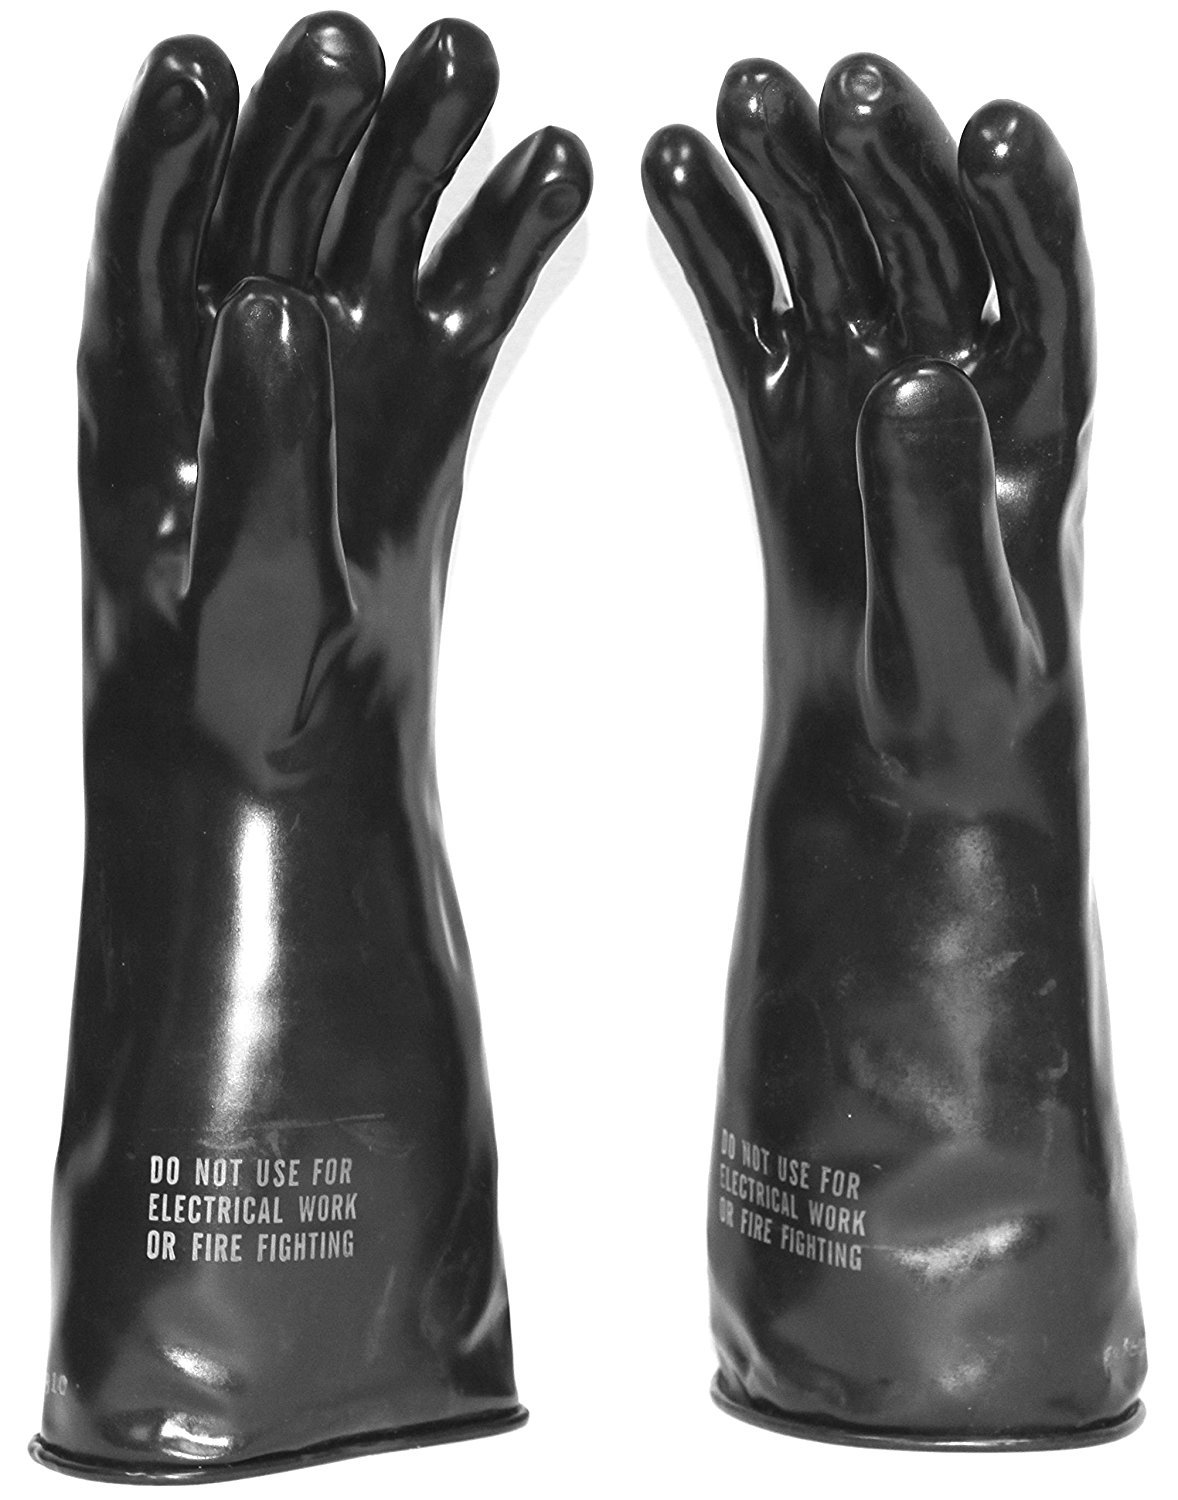 Butyl Rubber Gloves (Chemical Resistant) 12 Per Box (Extra Large)